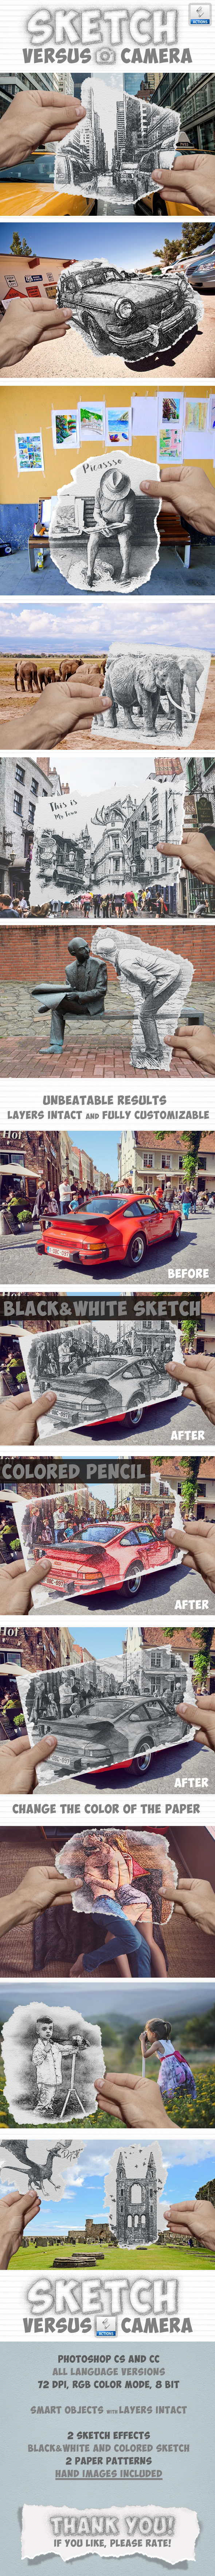 Pencil Sketch vs Camera Photo Effect Photoshop Action - Photo Effects Actions